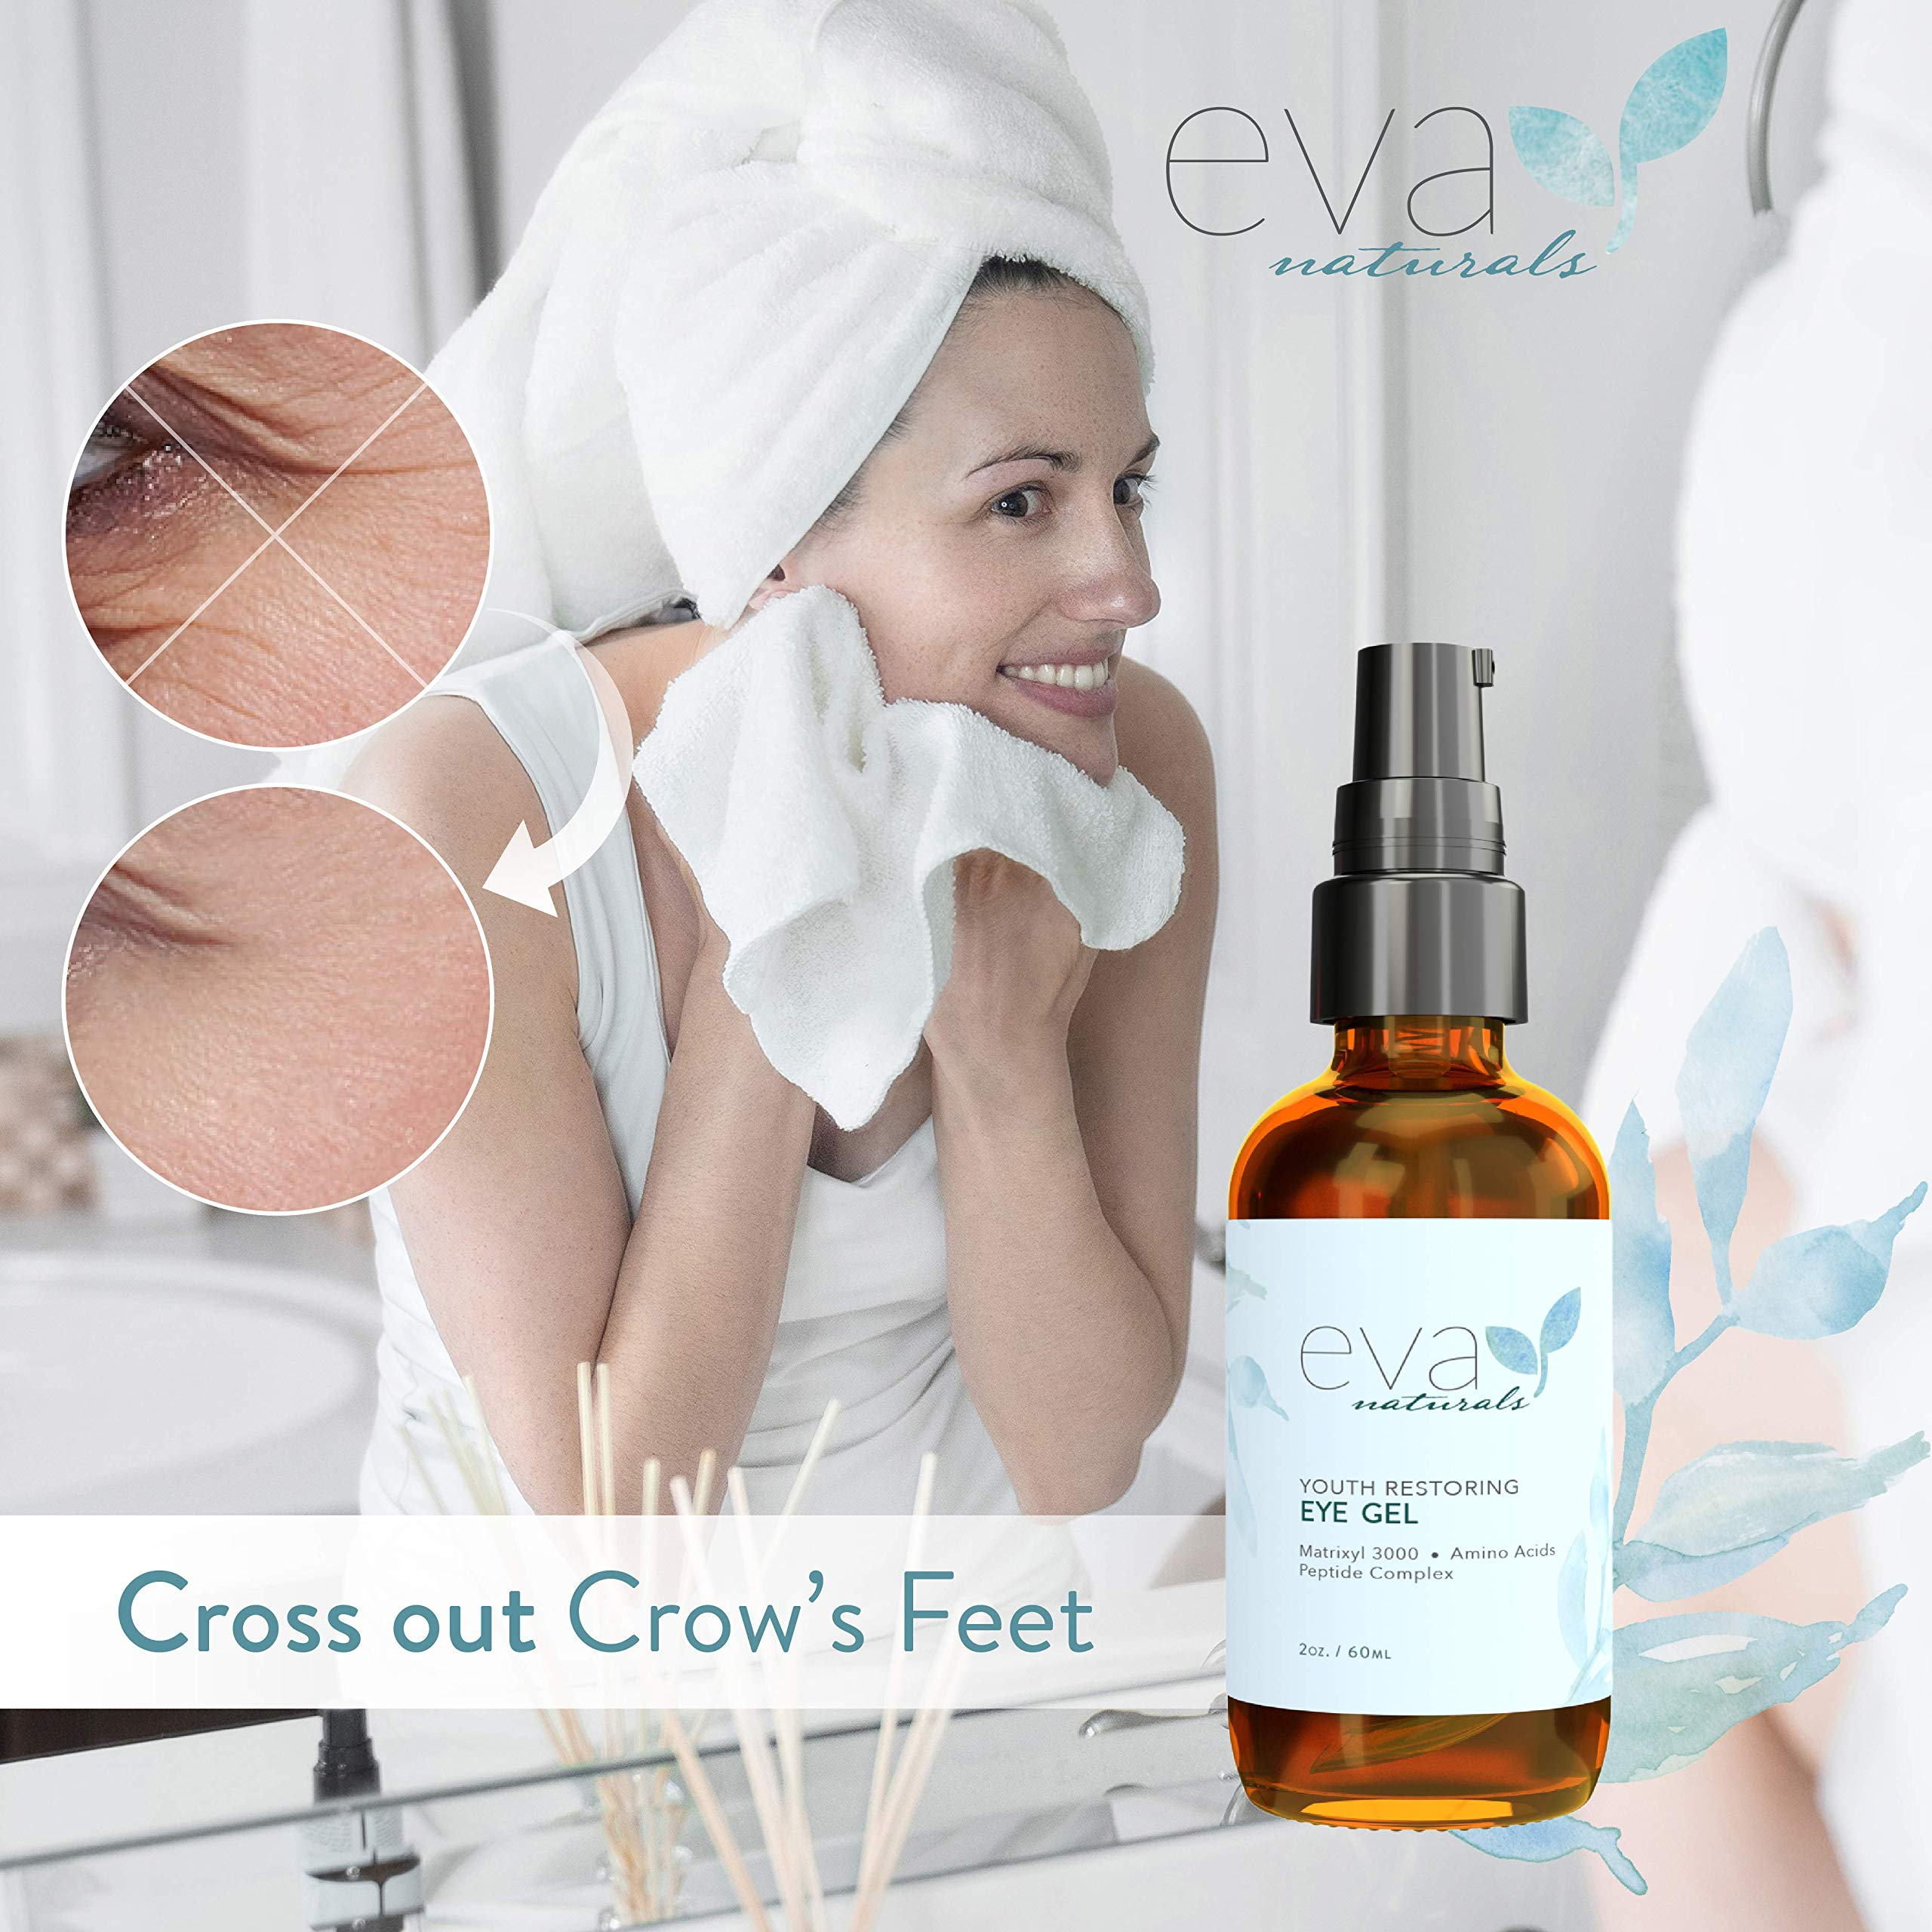 Eva Naturals Anti-Aging Eye Gel - Luxurious Hydrating Under Eye Cream For Bags, Dark Circles, Crows Feet, Wrinkles & Puffy Eyes - With Hyaluronic Acid, Vitamin E & Skin-Firming Peptides (2 Oz.)